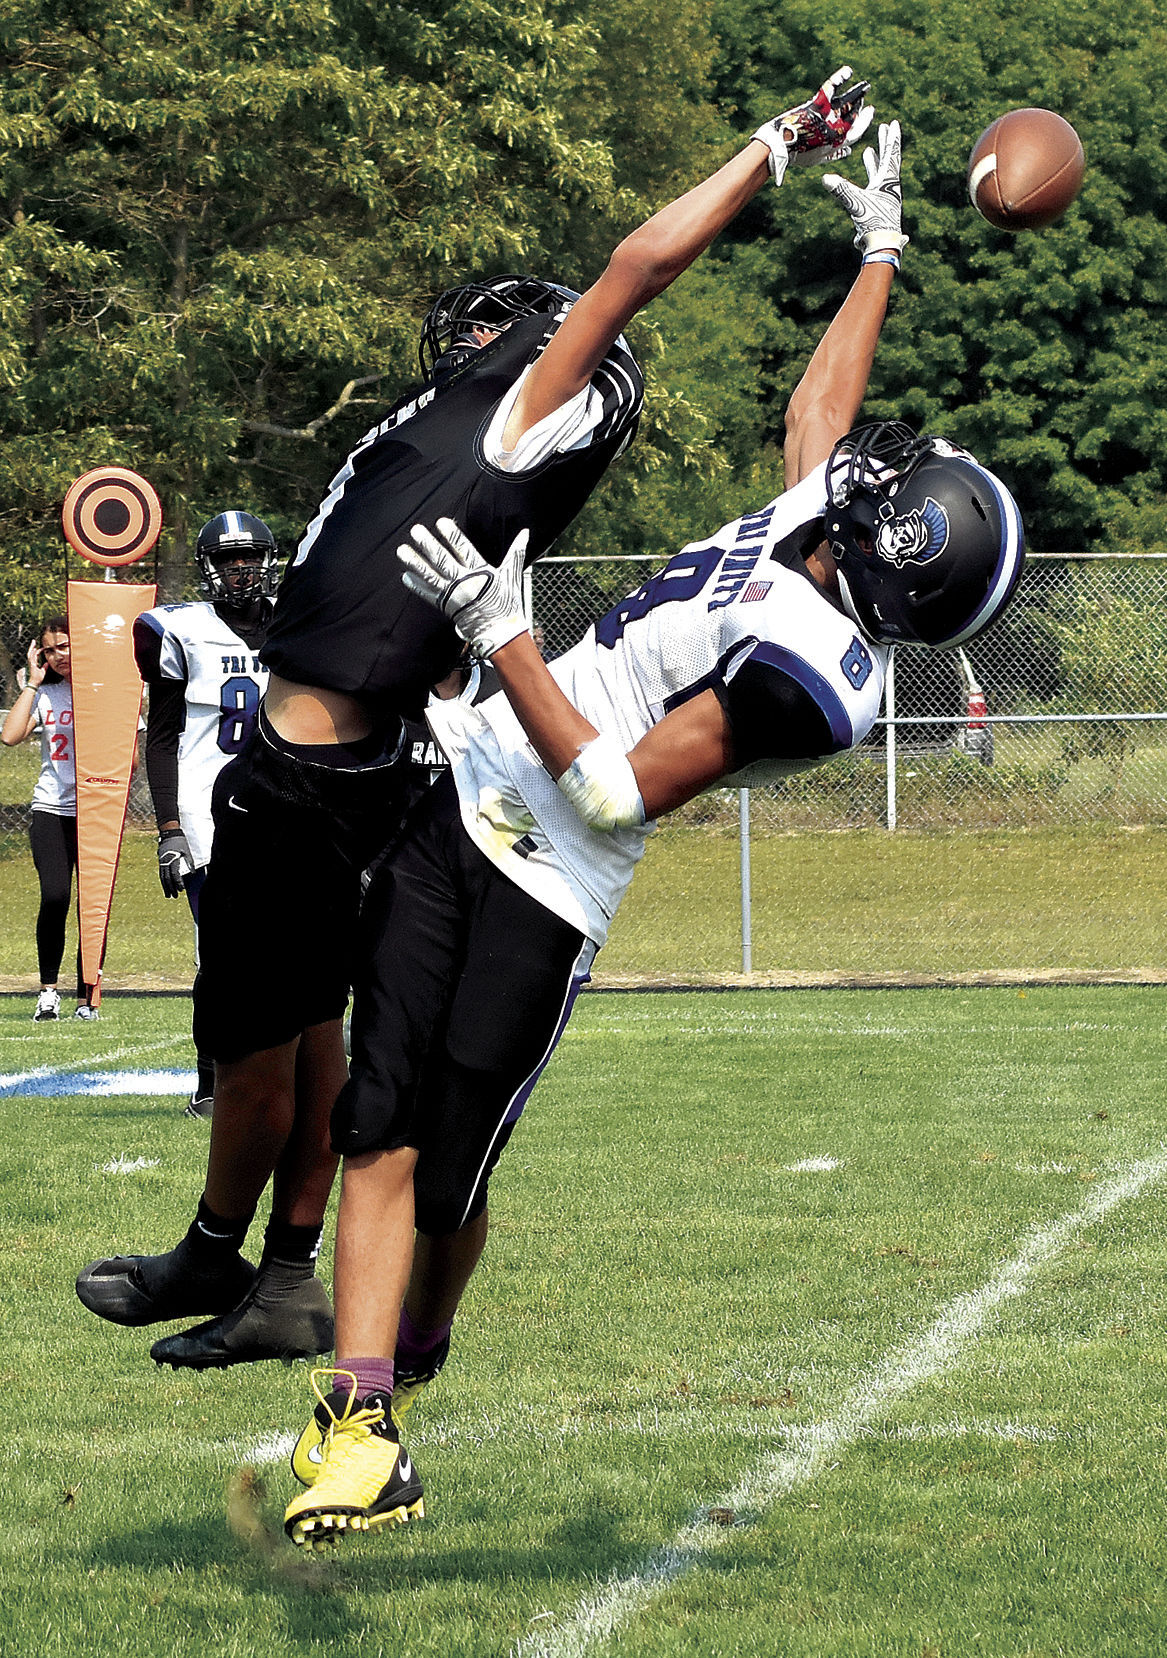 9 16 Sports FB 2 1 and 8 pass D.jpg